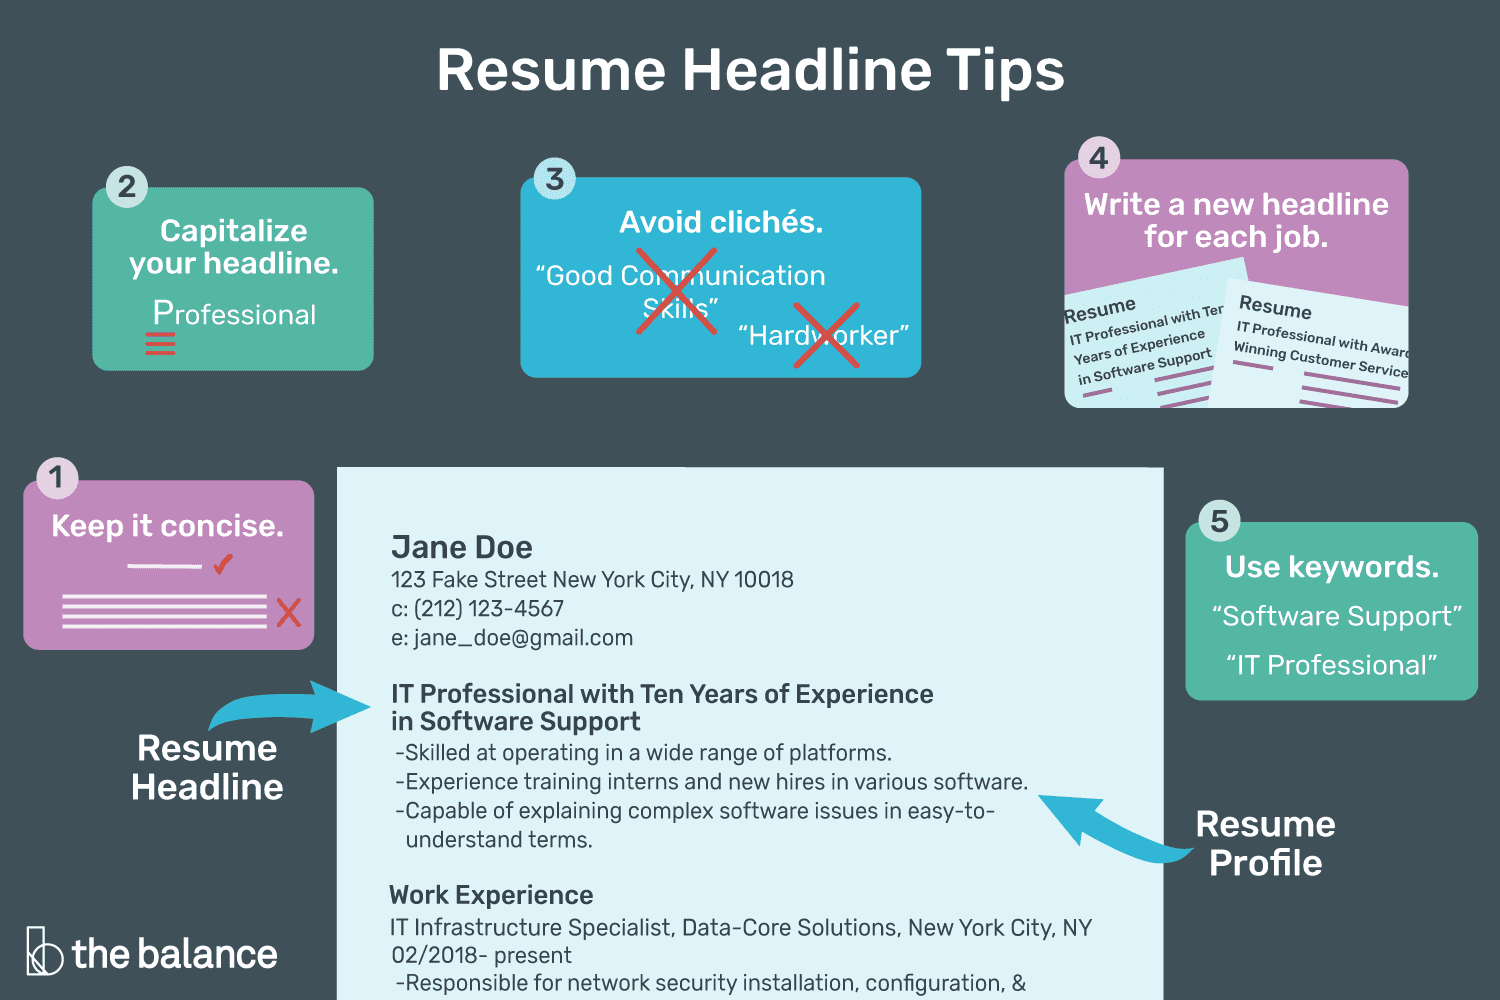 Tips For Writing A Resume Headline